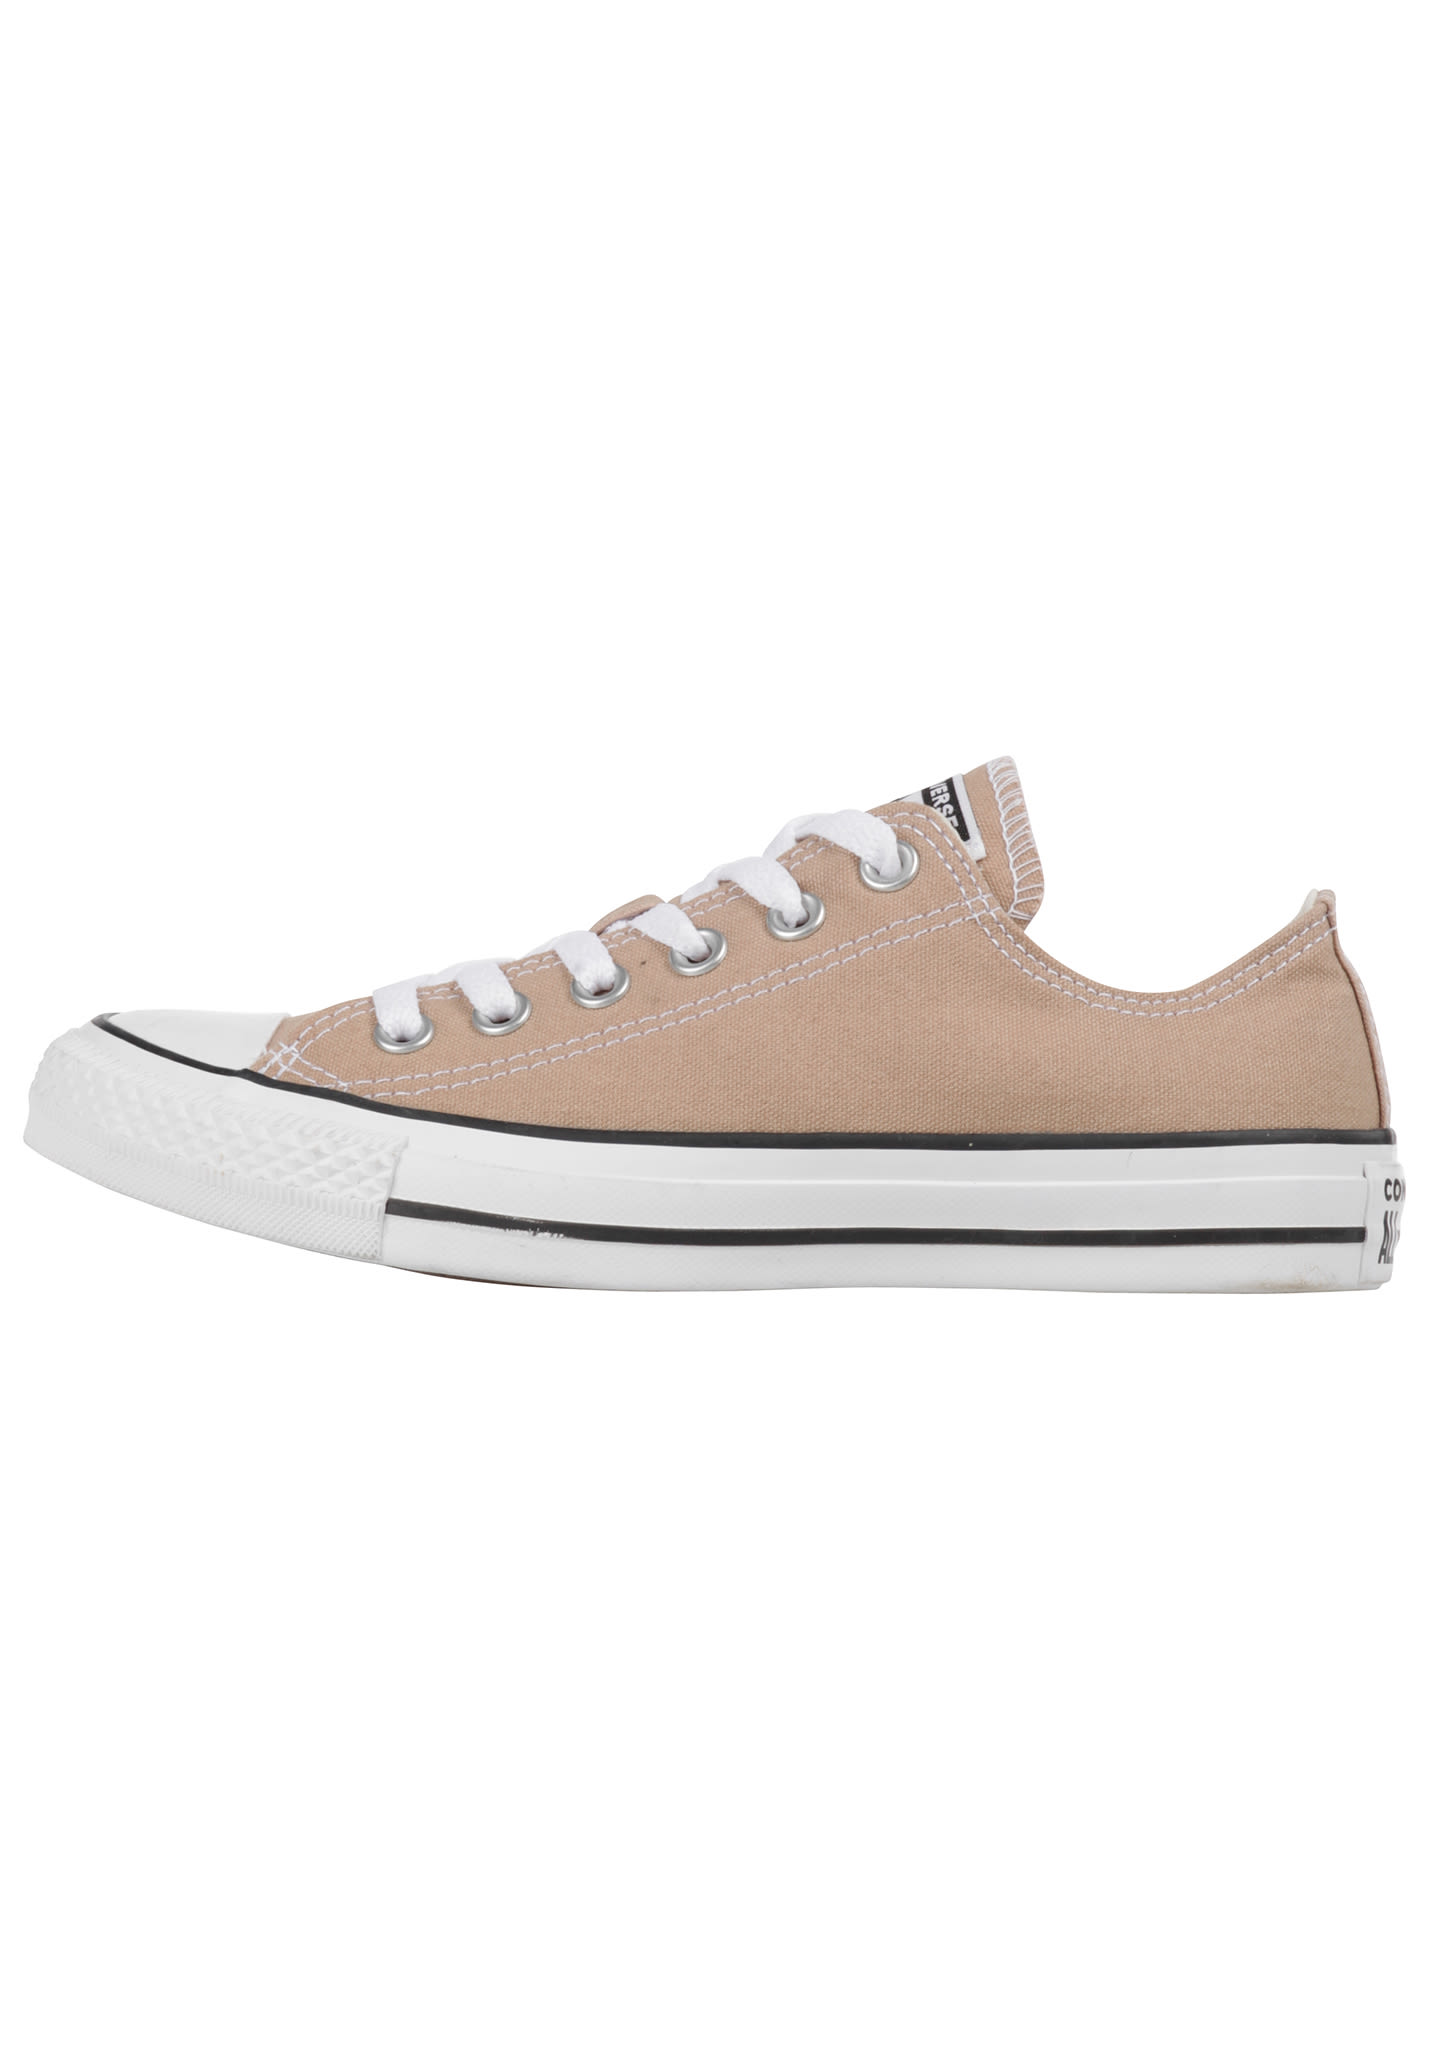 By B Hints || Converse Chuck Taylor Womens